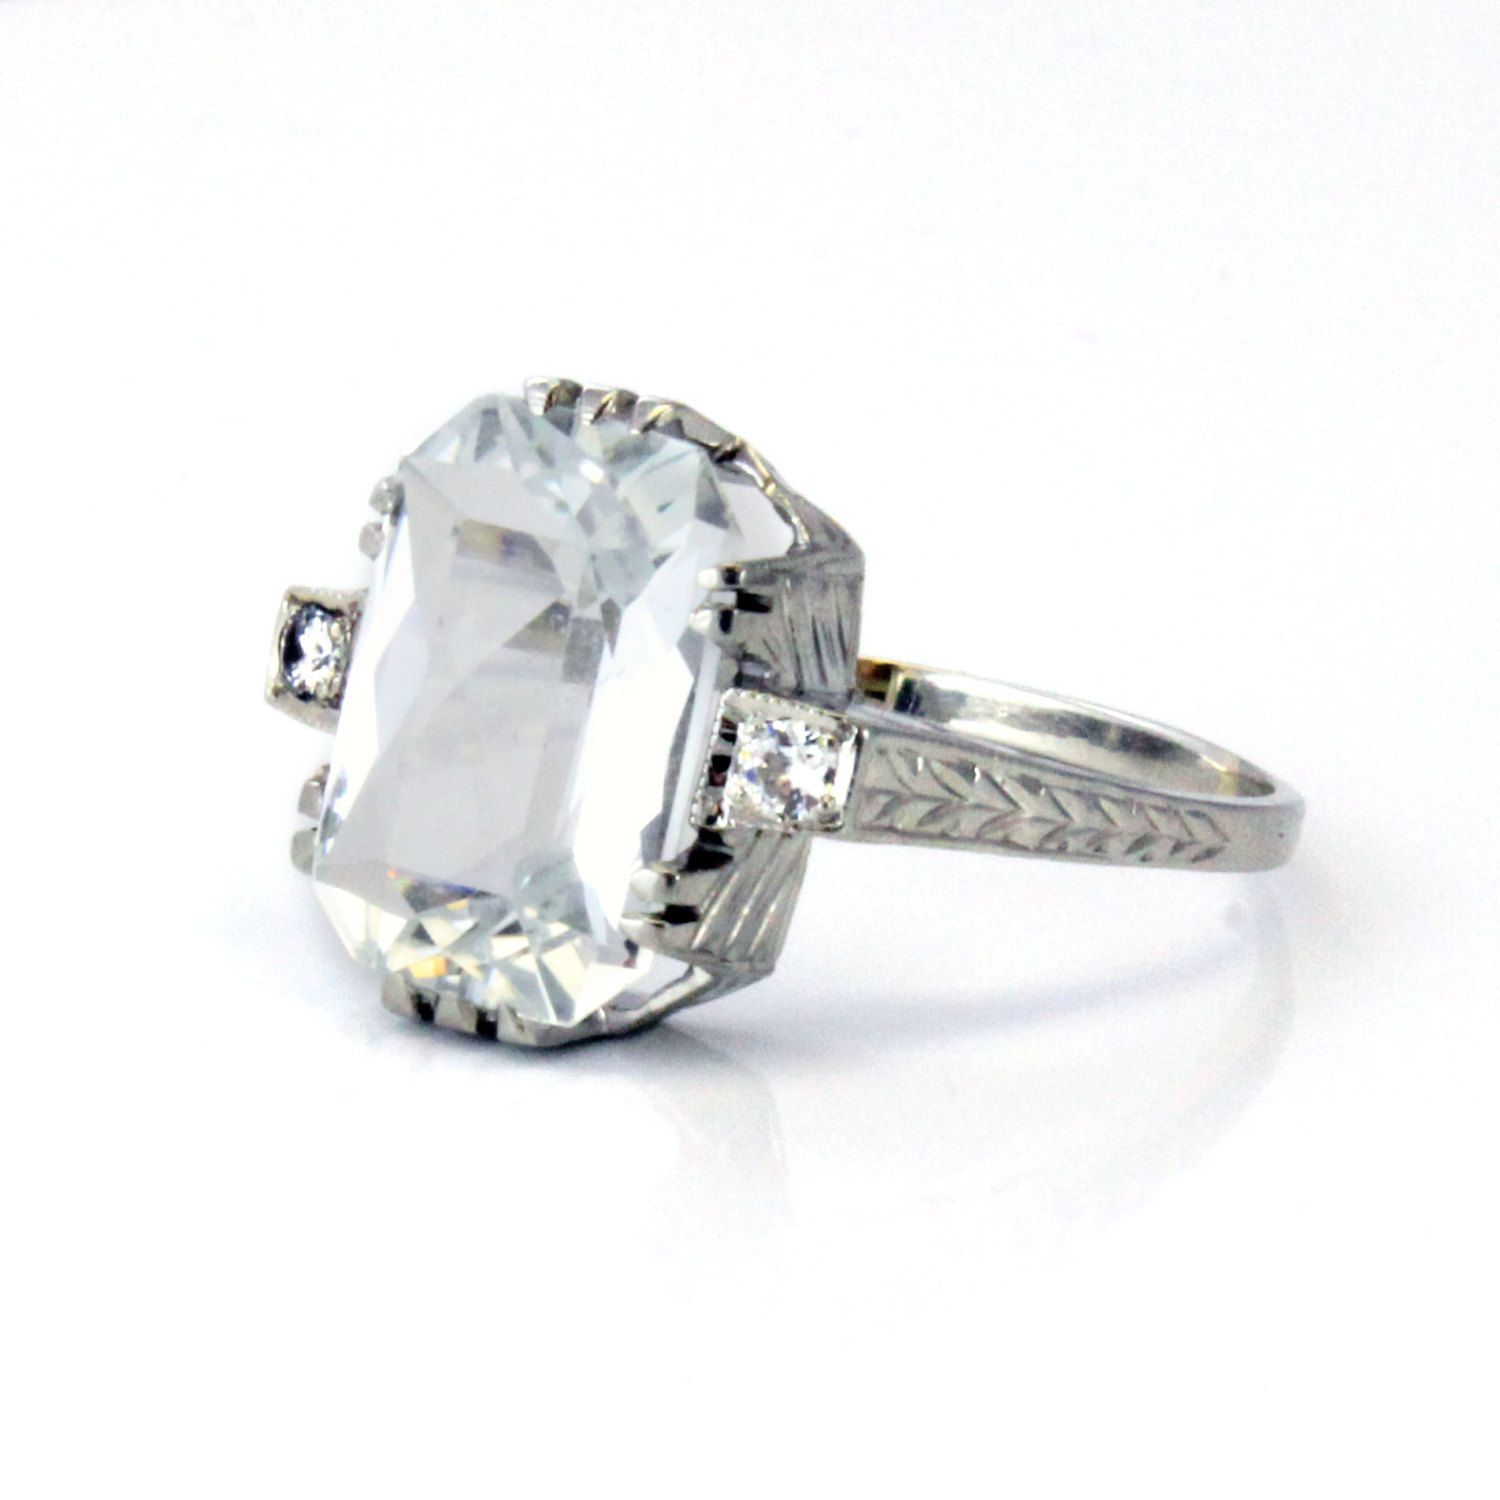 ring gemstone new diamond in rings and gold sapphire wedding white engagement halo jewellery cqsnvew promise micropave